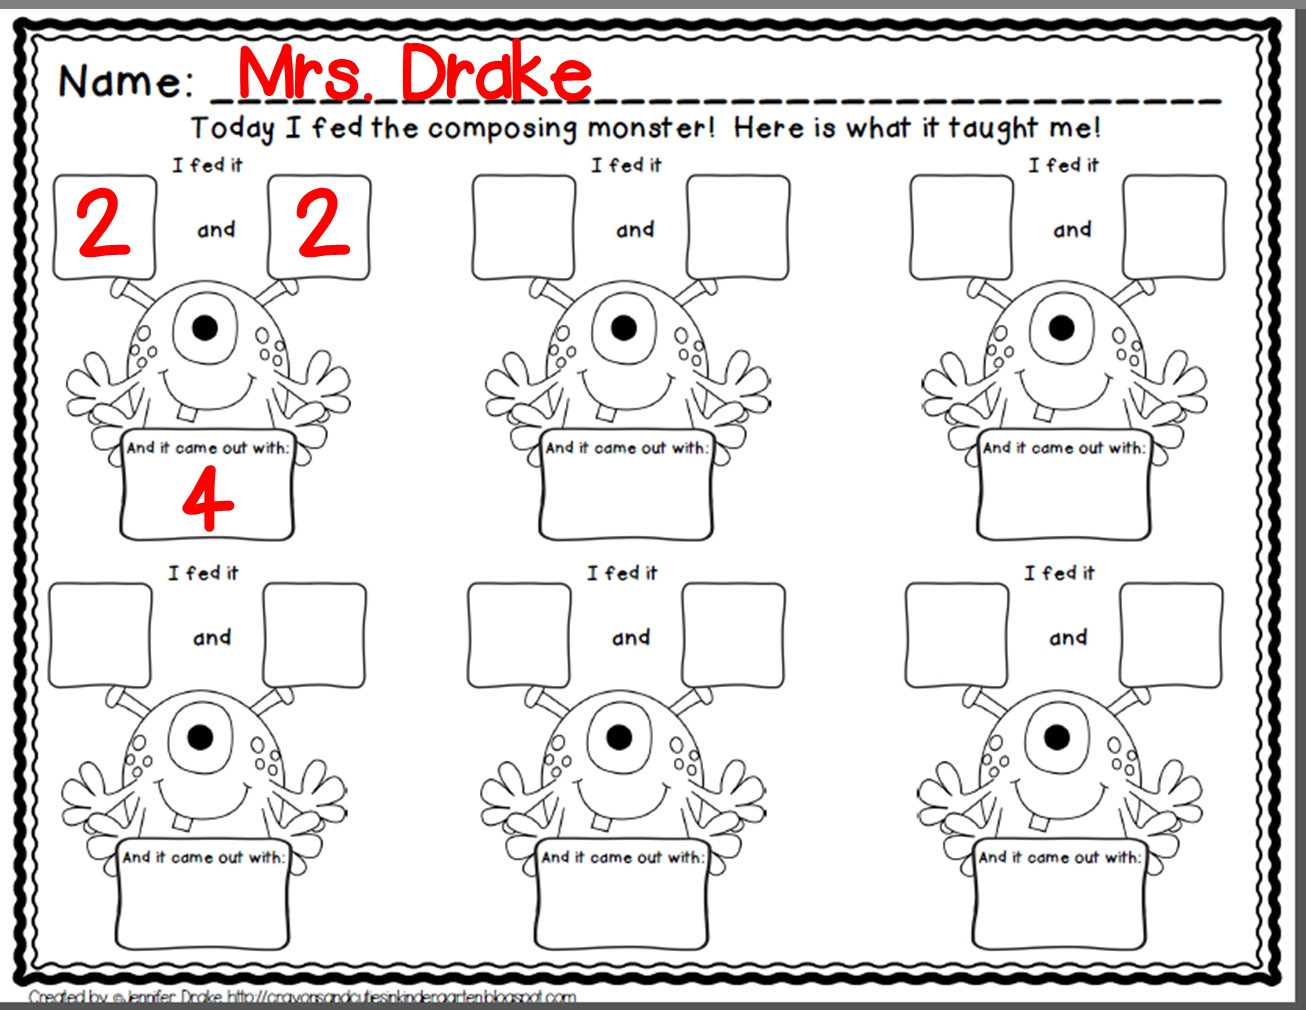 worksheet teaching phonemic awareness activities mr harr rubric staggering fun worksheets for first grade image inspirations free reading